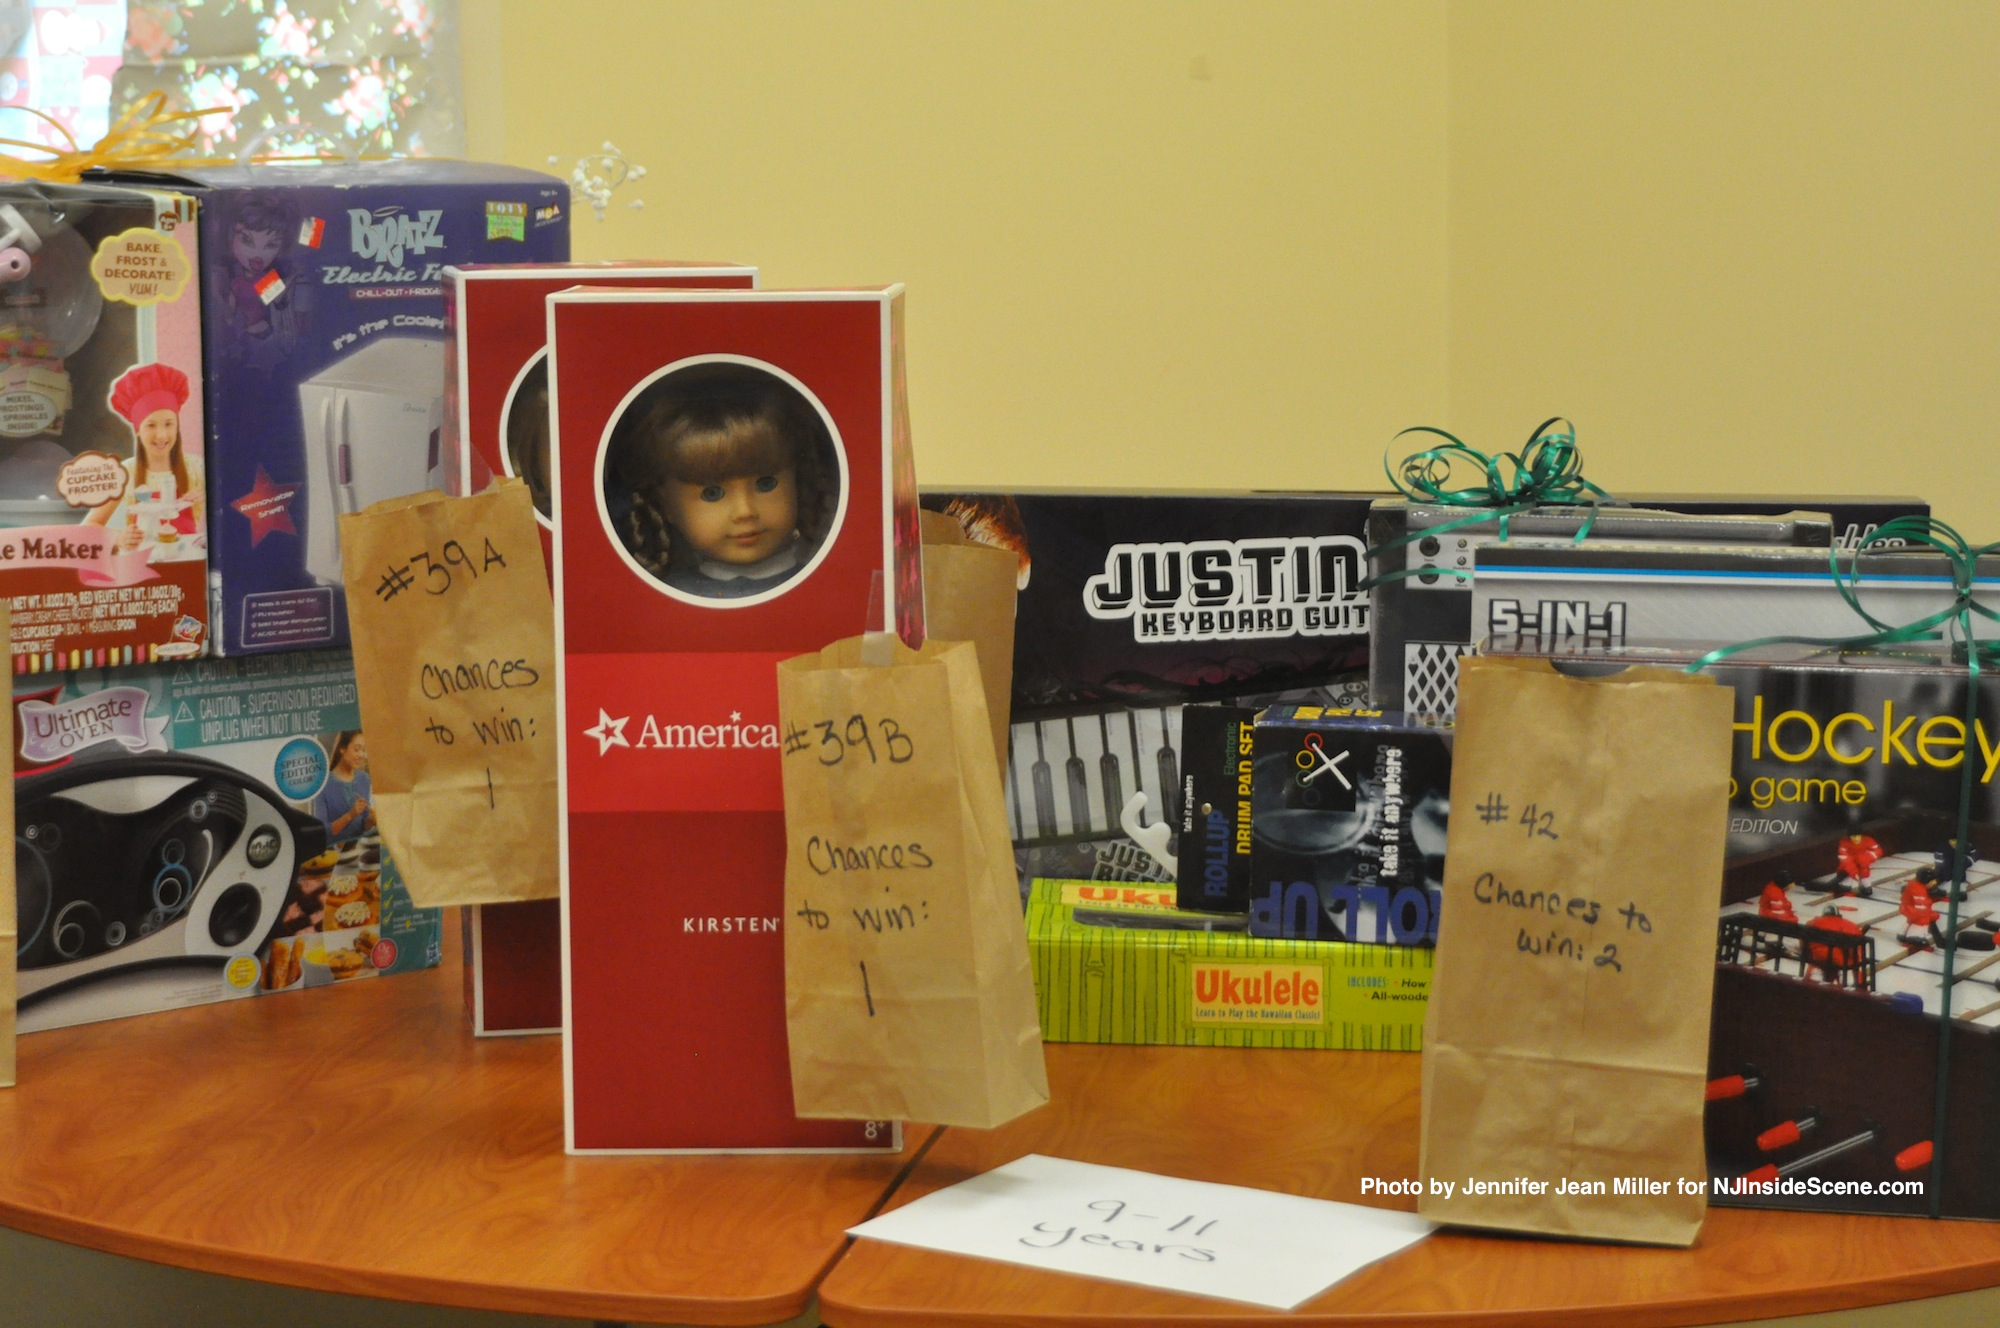 Items in the raffle room, a possible added bonuses offered during the Season of Hope shopping event.